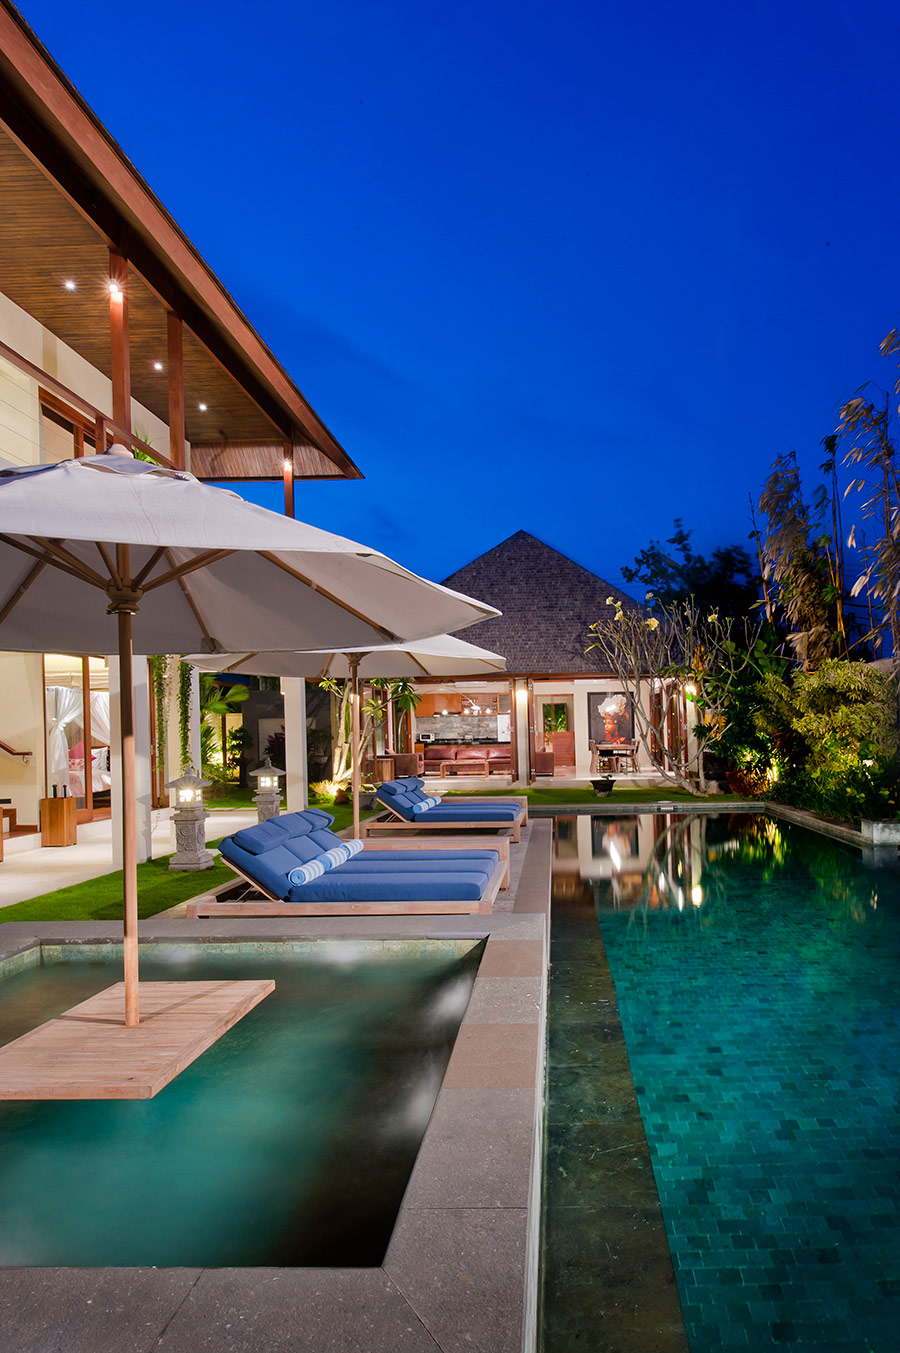 Villa-Joss-Jacuzzi-at-night